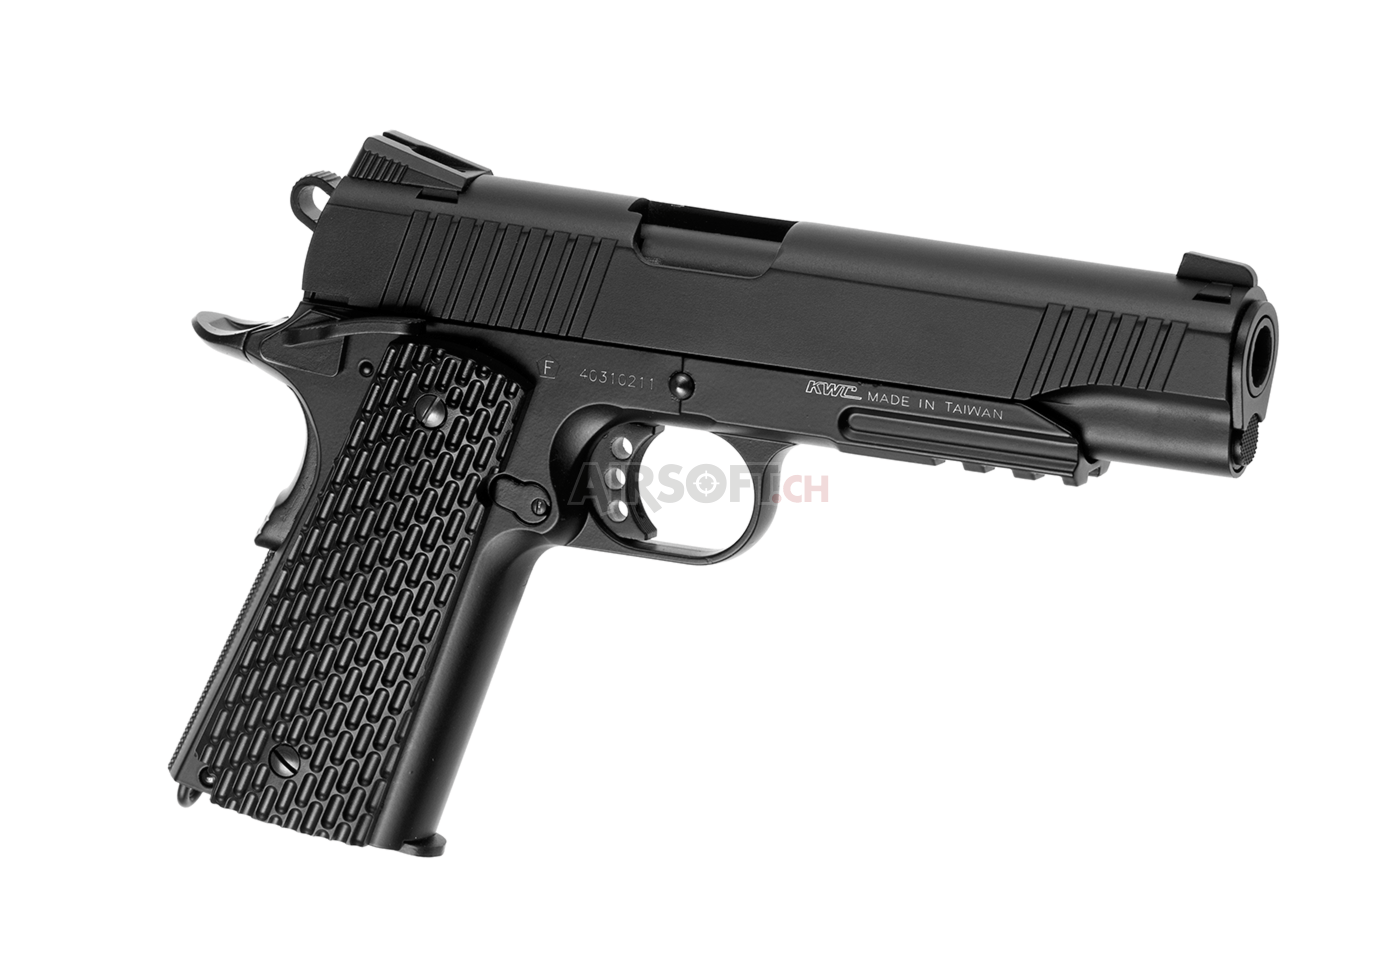 M1911 Tactical Full Metal Co2 (KWC) - with Blowback - Airsoft Pistols Co2 - Pistols - airsoft.ch ...